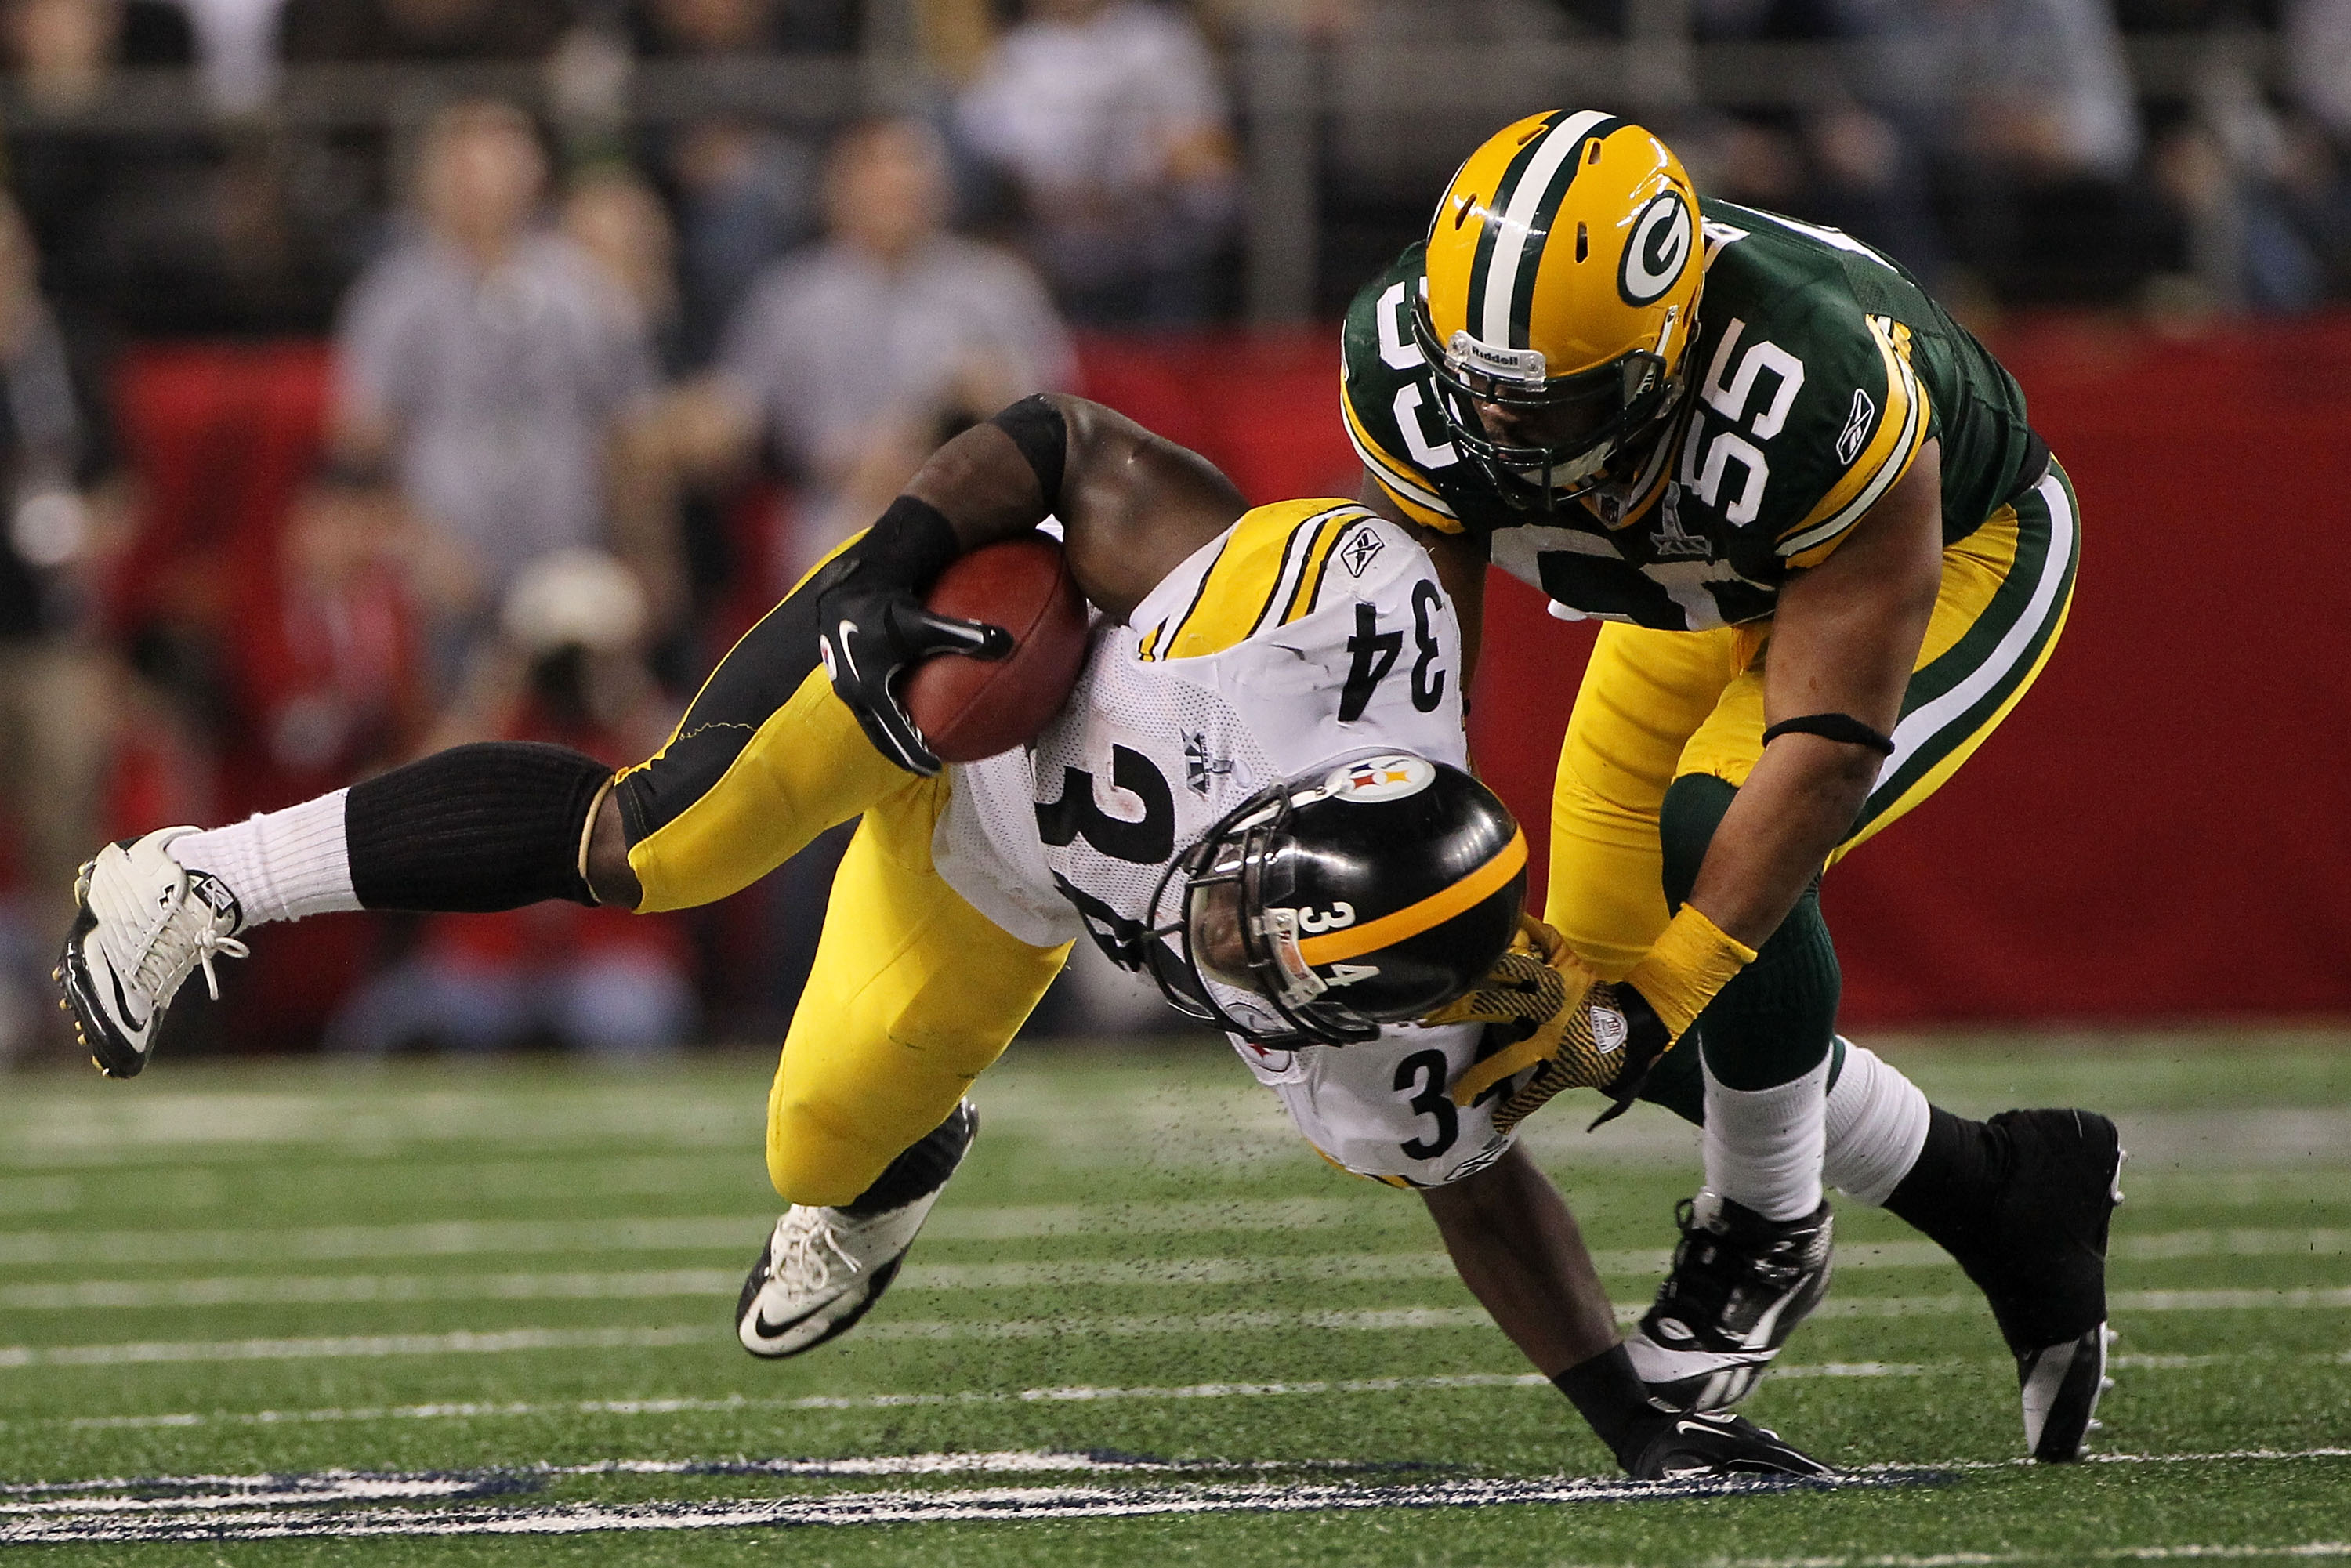 Desmond Bishop was the man who picked up Mendenhall's costly fumble, which was caused by Clay Matthews.